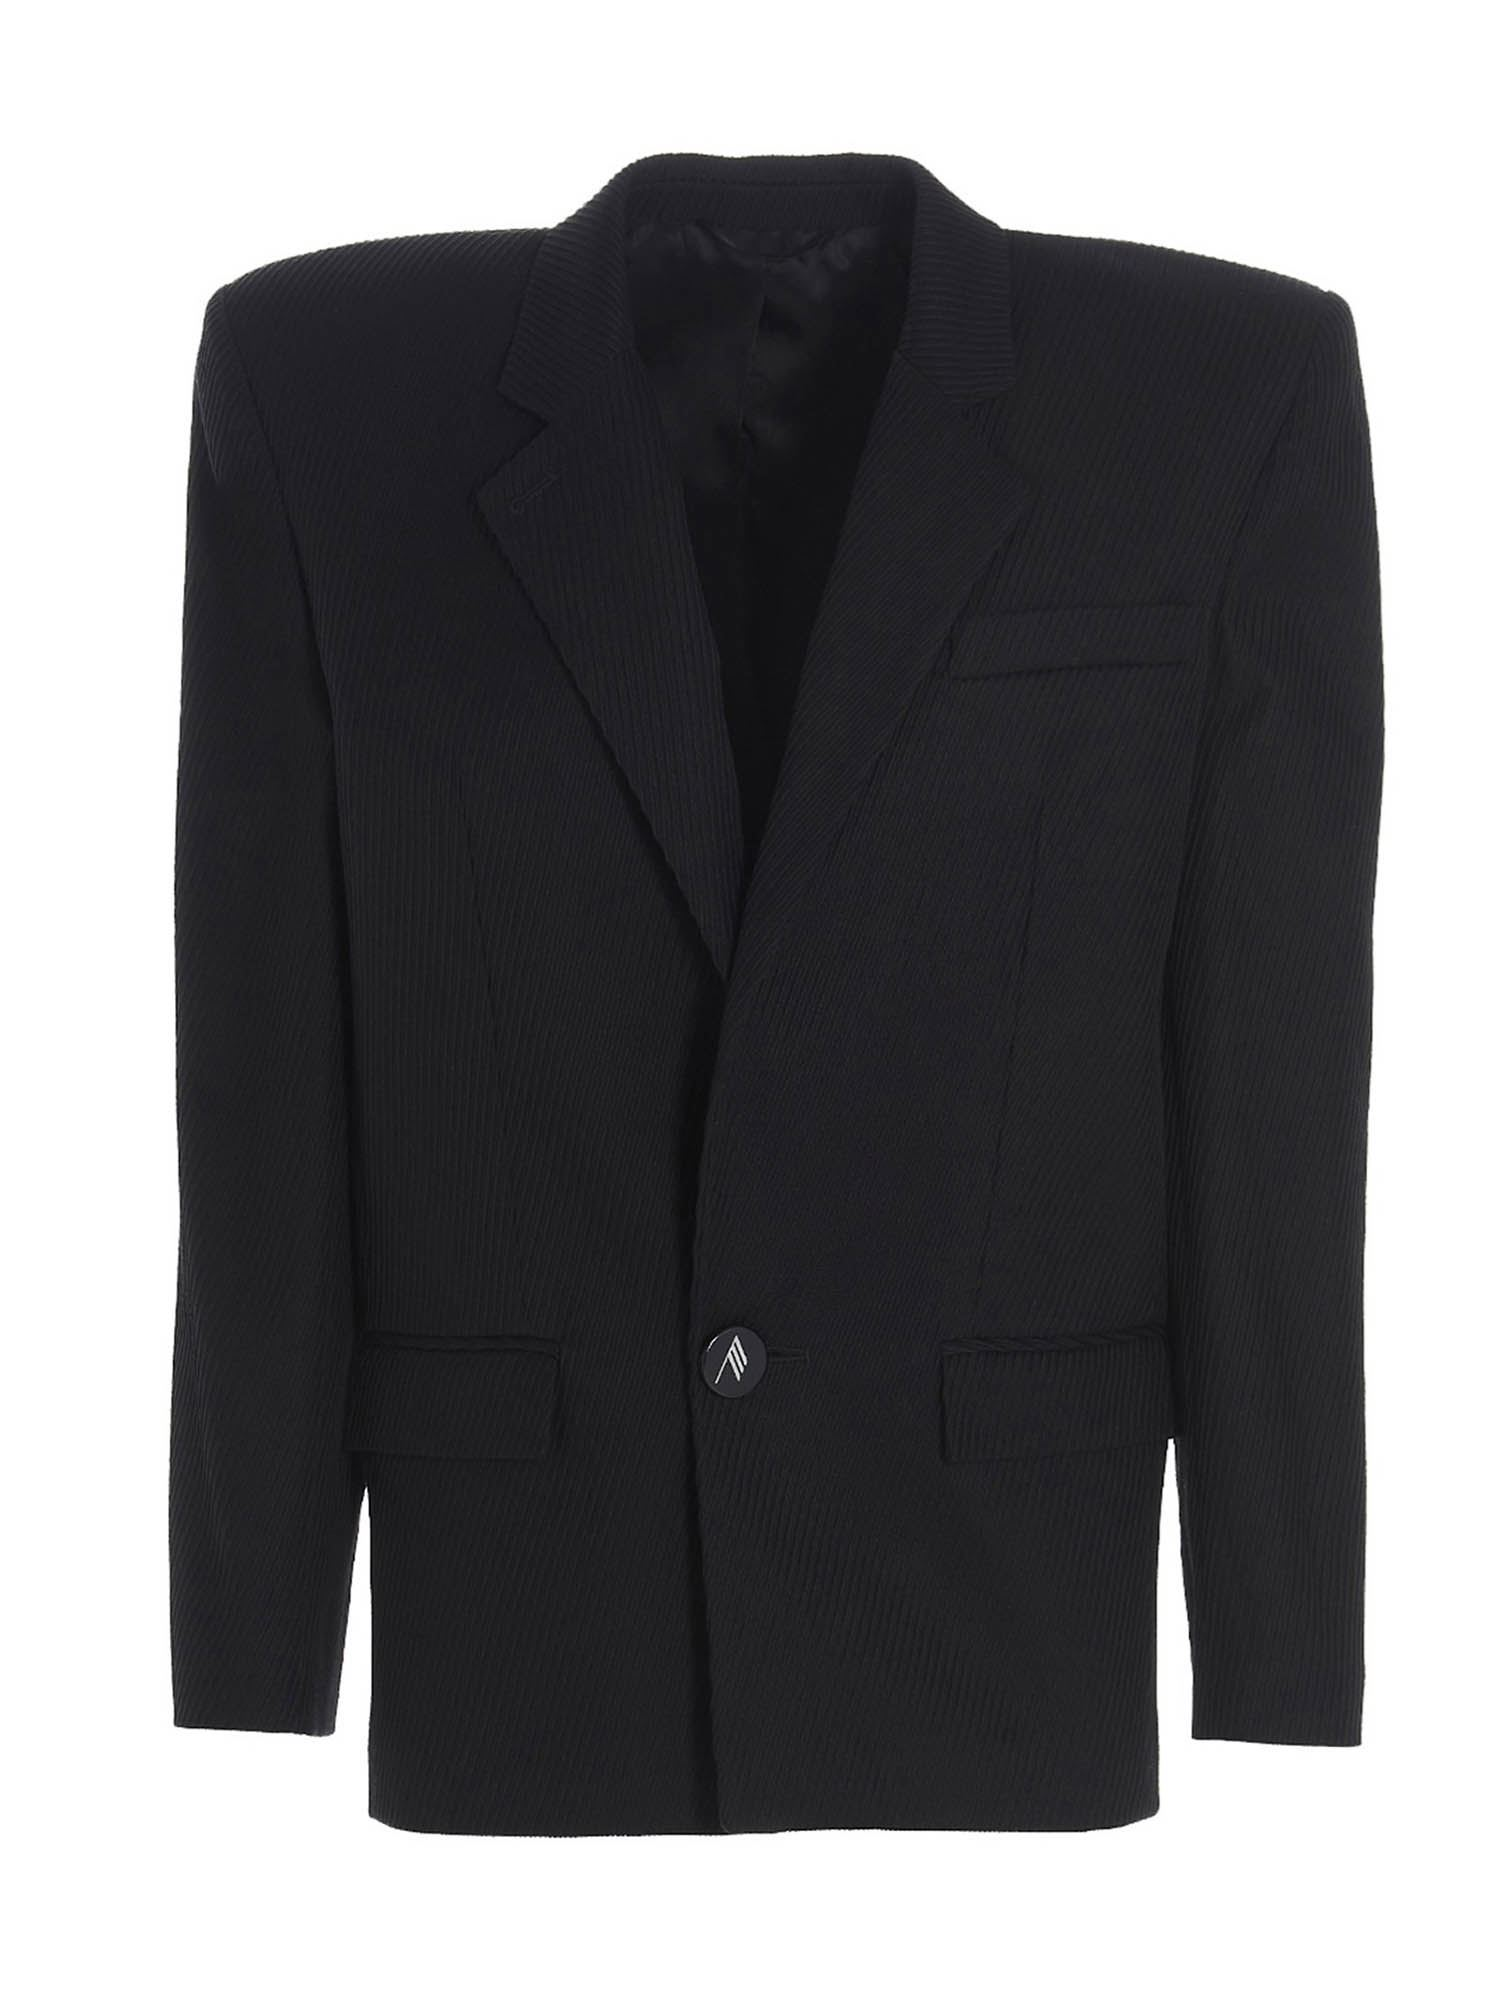 Attico CORDUROY JACKET IN BLACK